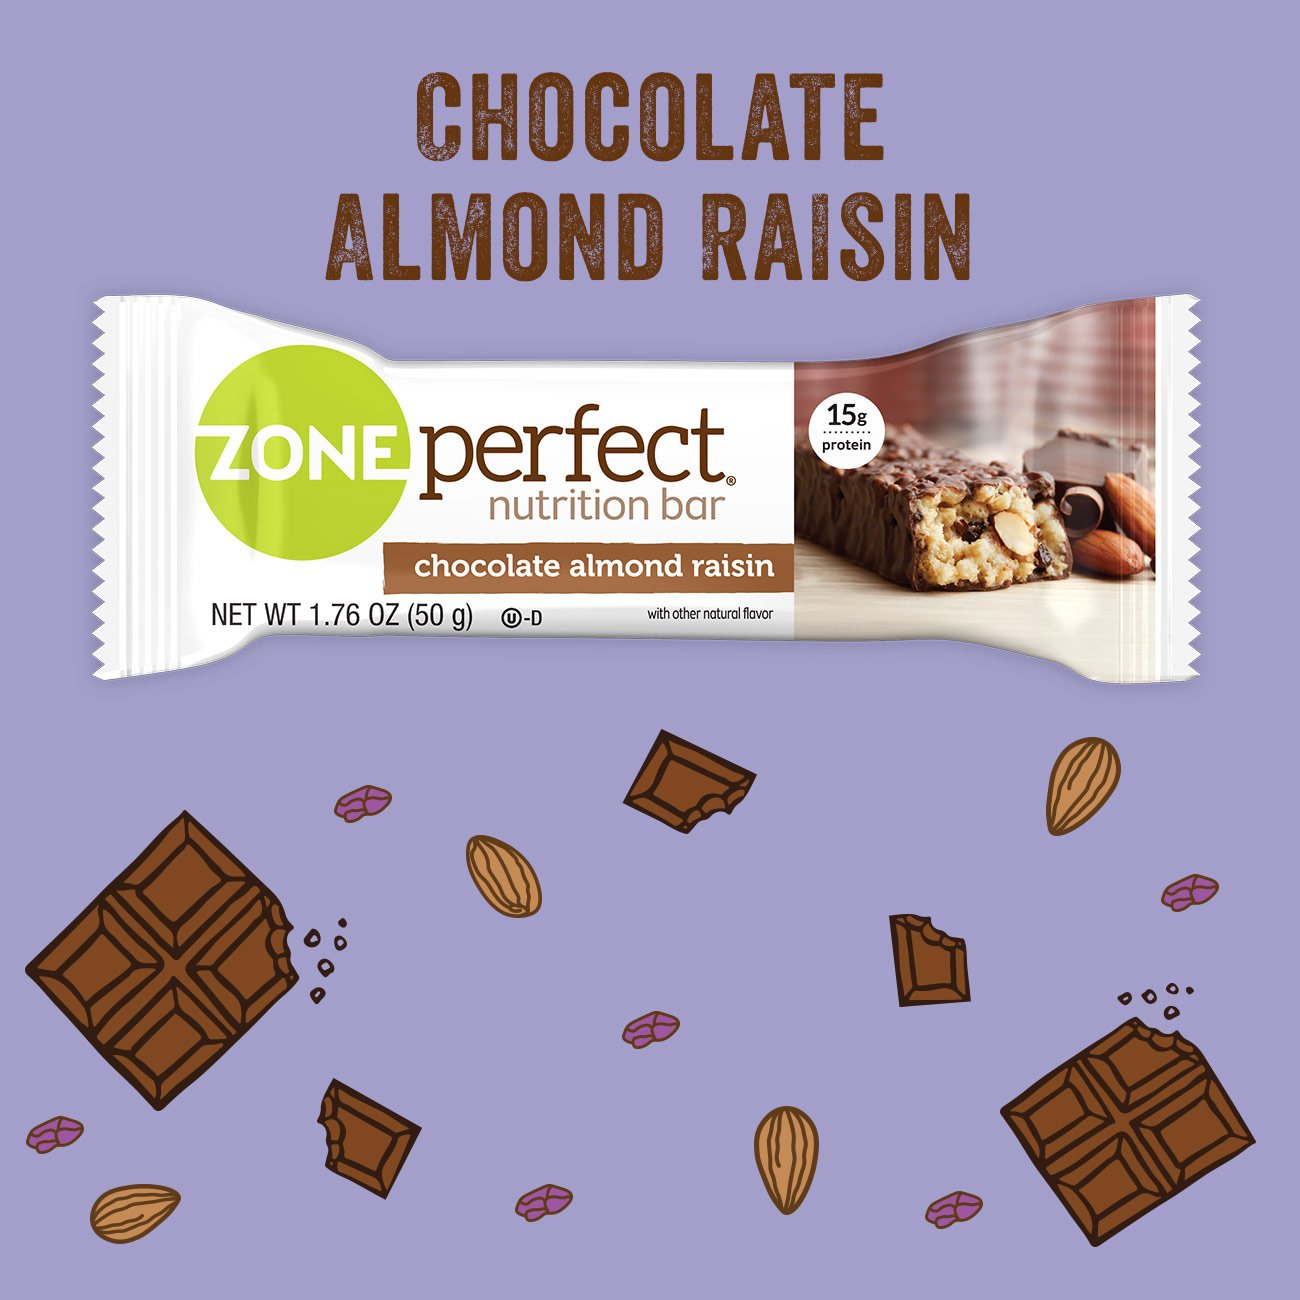 Zone Perfect Nutrition Bar, Chocolate Almond Raisin, 12 Count (Pack of 3) by Zoneperfect Classic (Image #6)